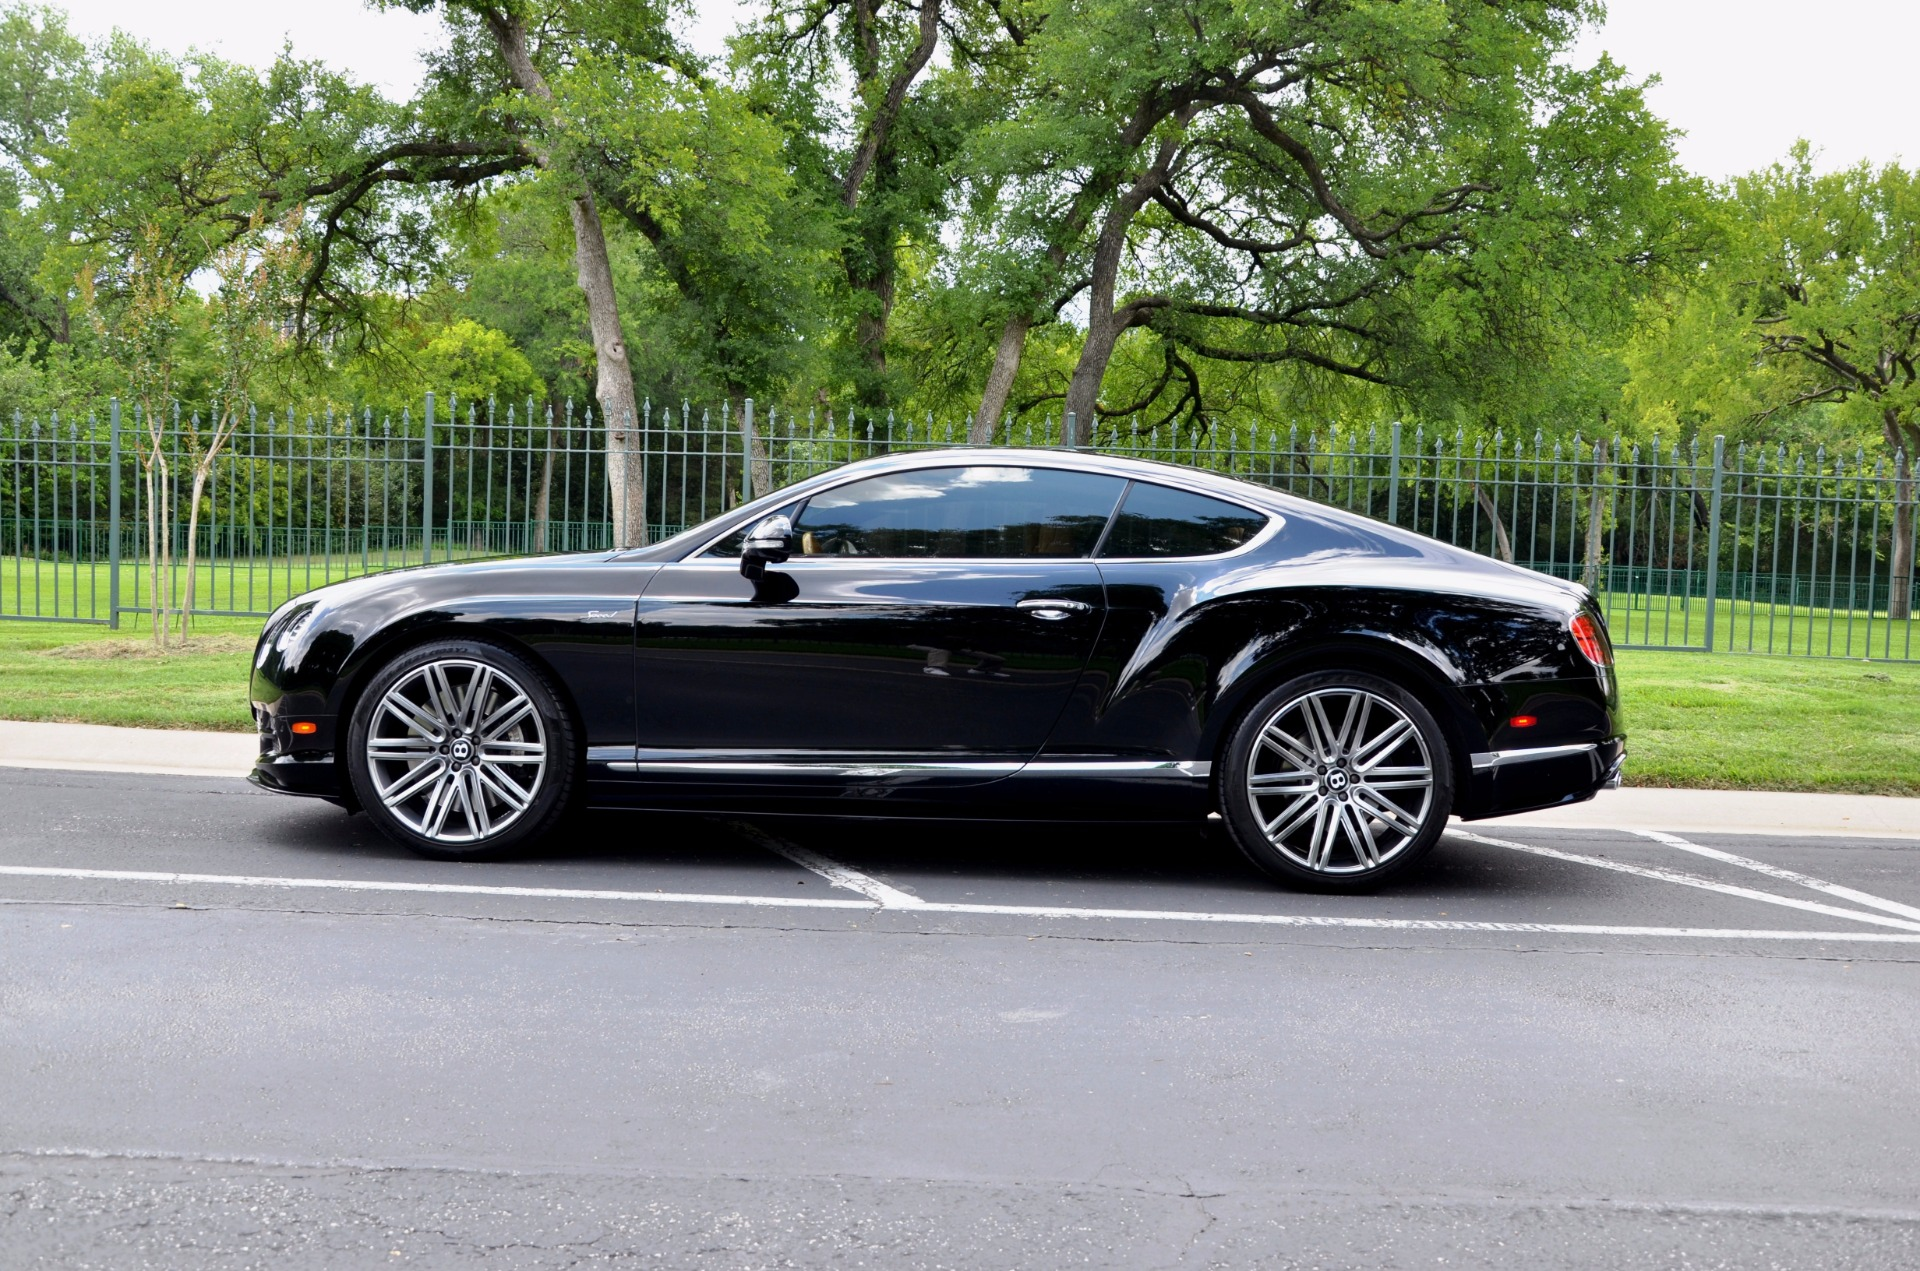 2015 bentley continental gt speed stock # 15gtspeed for sale near